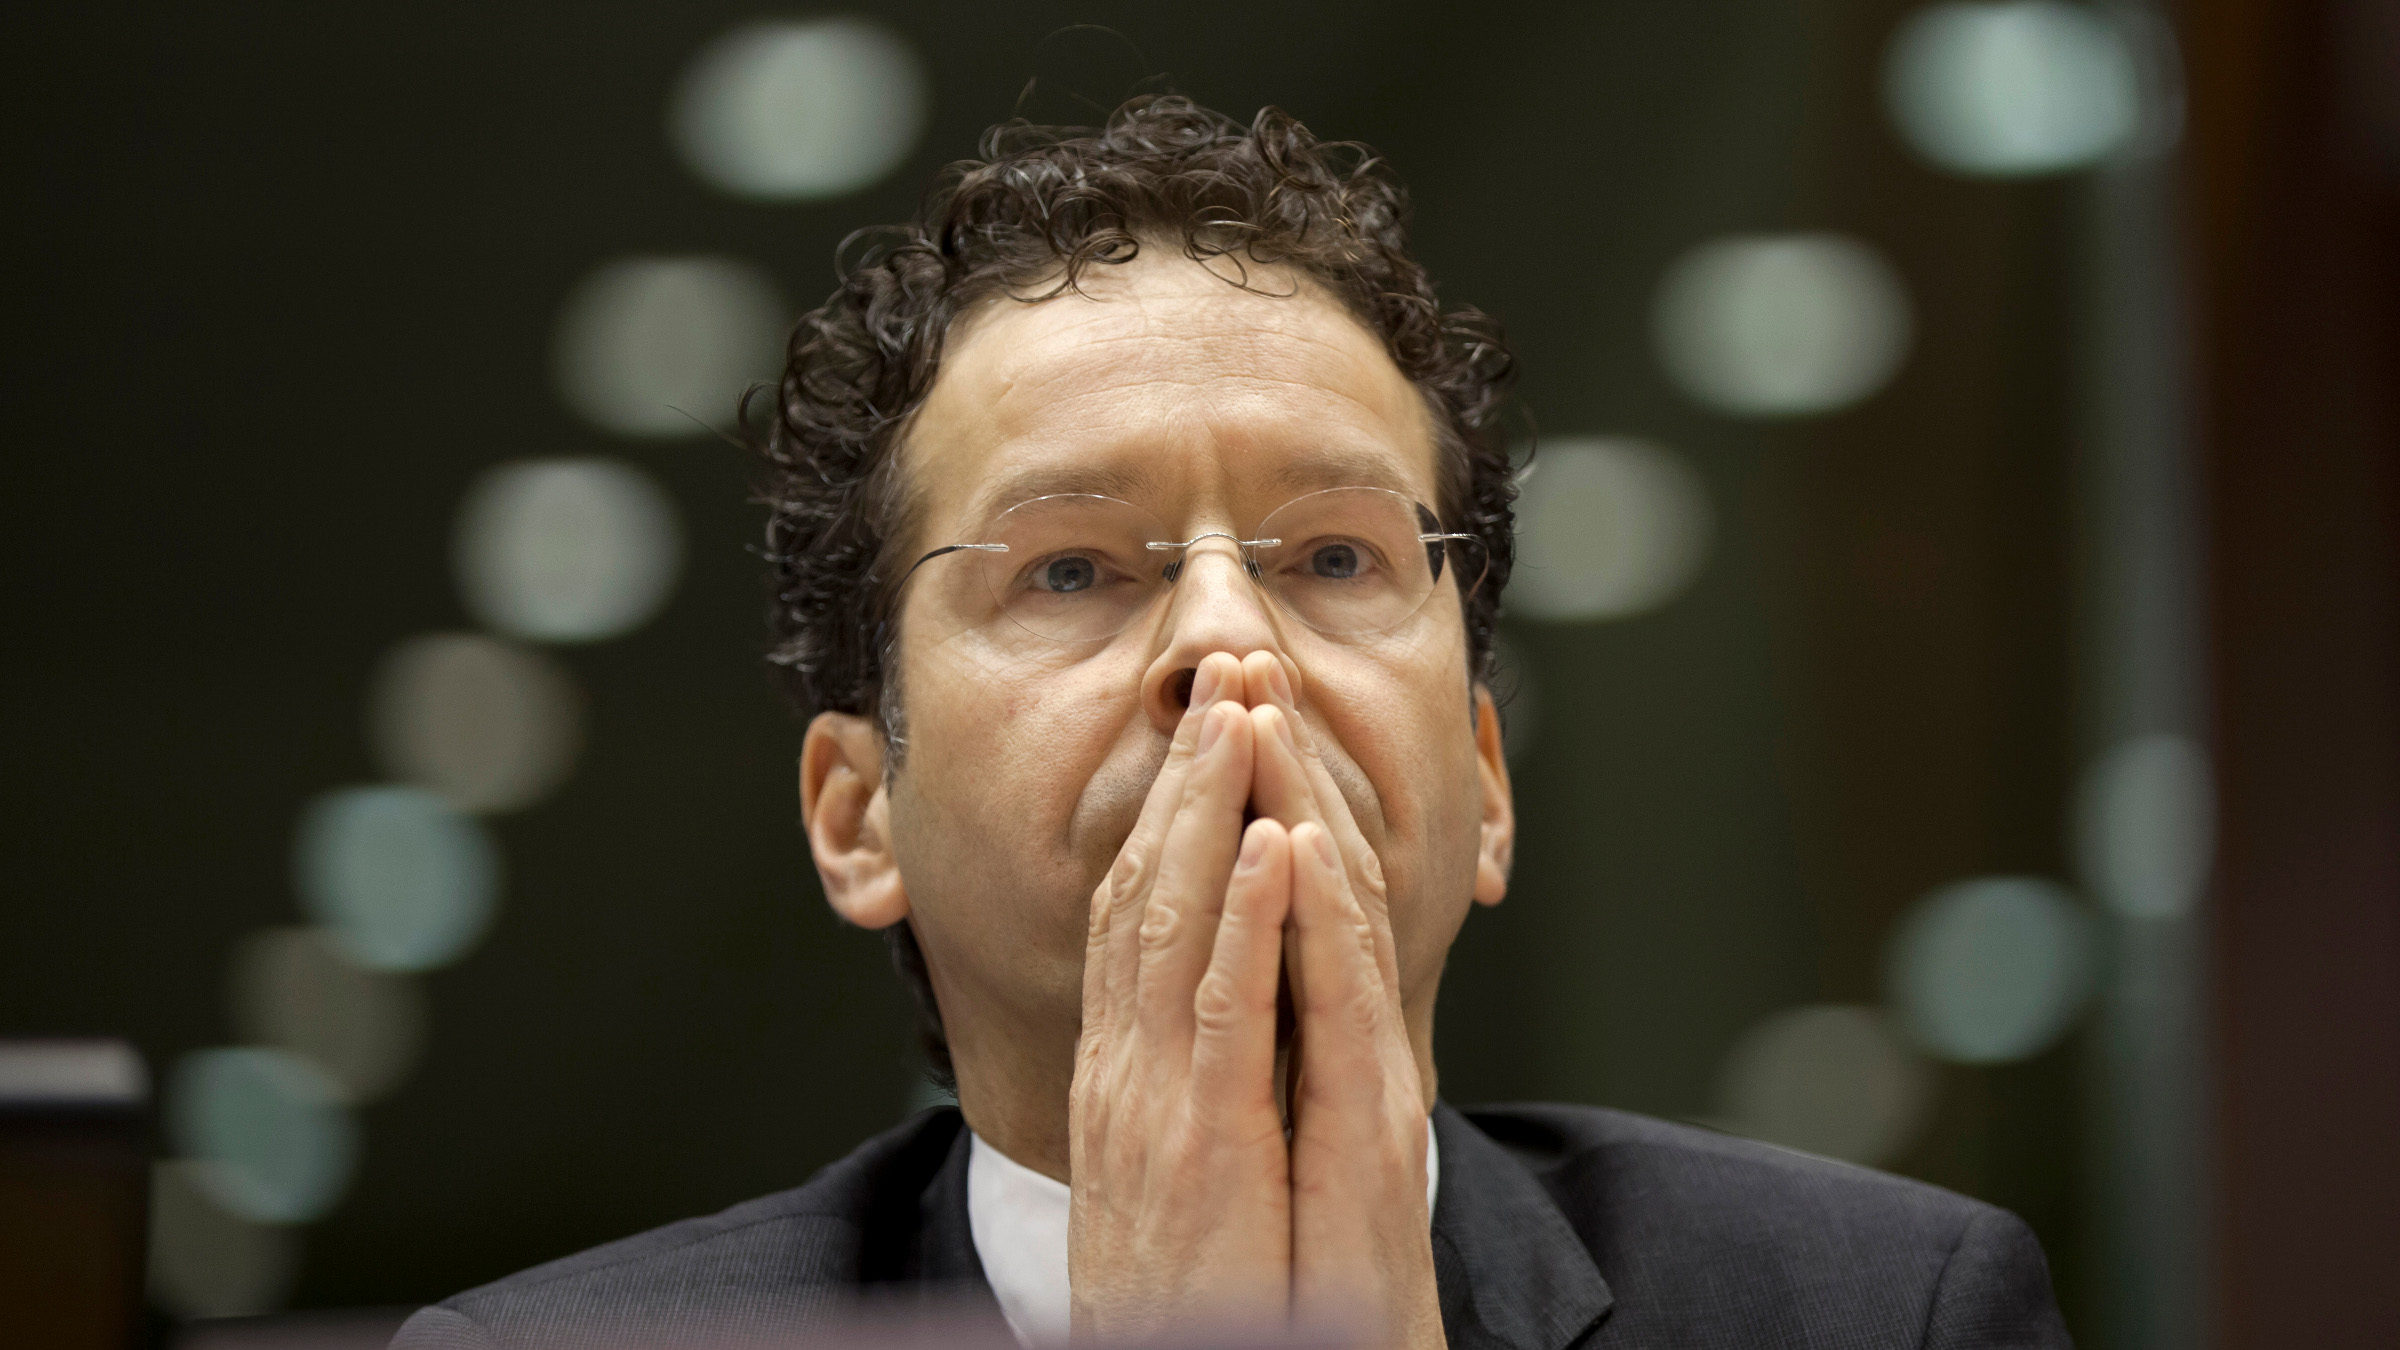 Dutch Finance Minister and leader of the eurogroup Jeroen Dijsselbloem pauses before answering questions during a sitting of the European Parliament in Brussels on Thursday, March 21, 2013. Cypriot officials are trying to find new ways to stave off financial ruin, including asking Russia for help, after its Parliament rejected a plan to contribute to the nation's bailout package by seizing depositors bank savings.